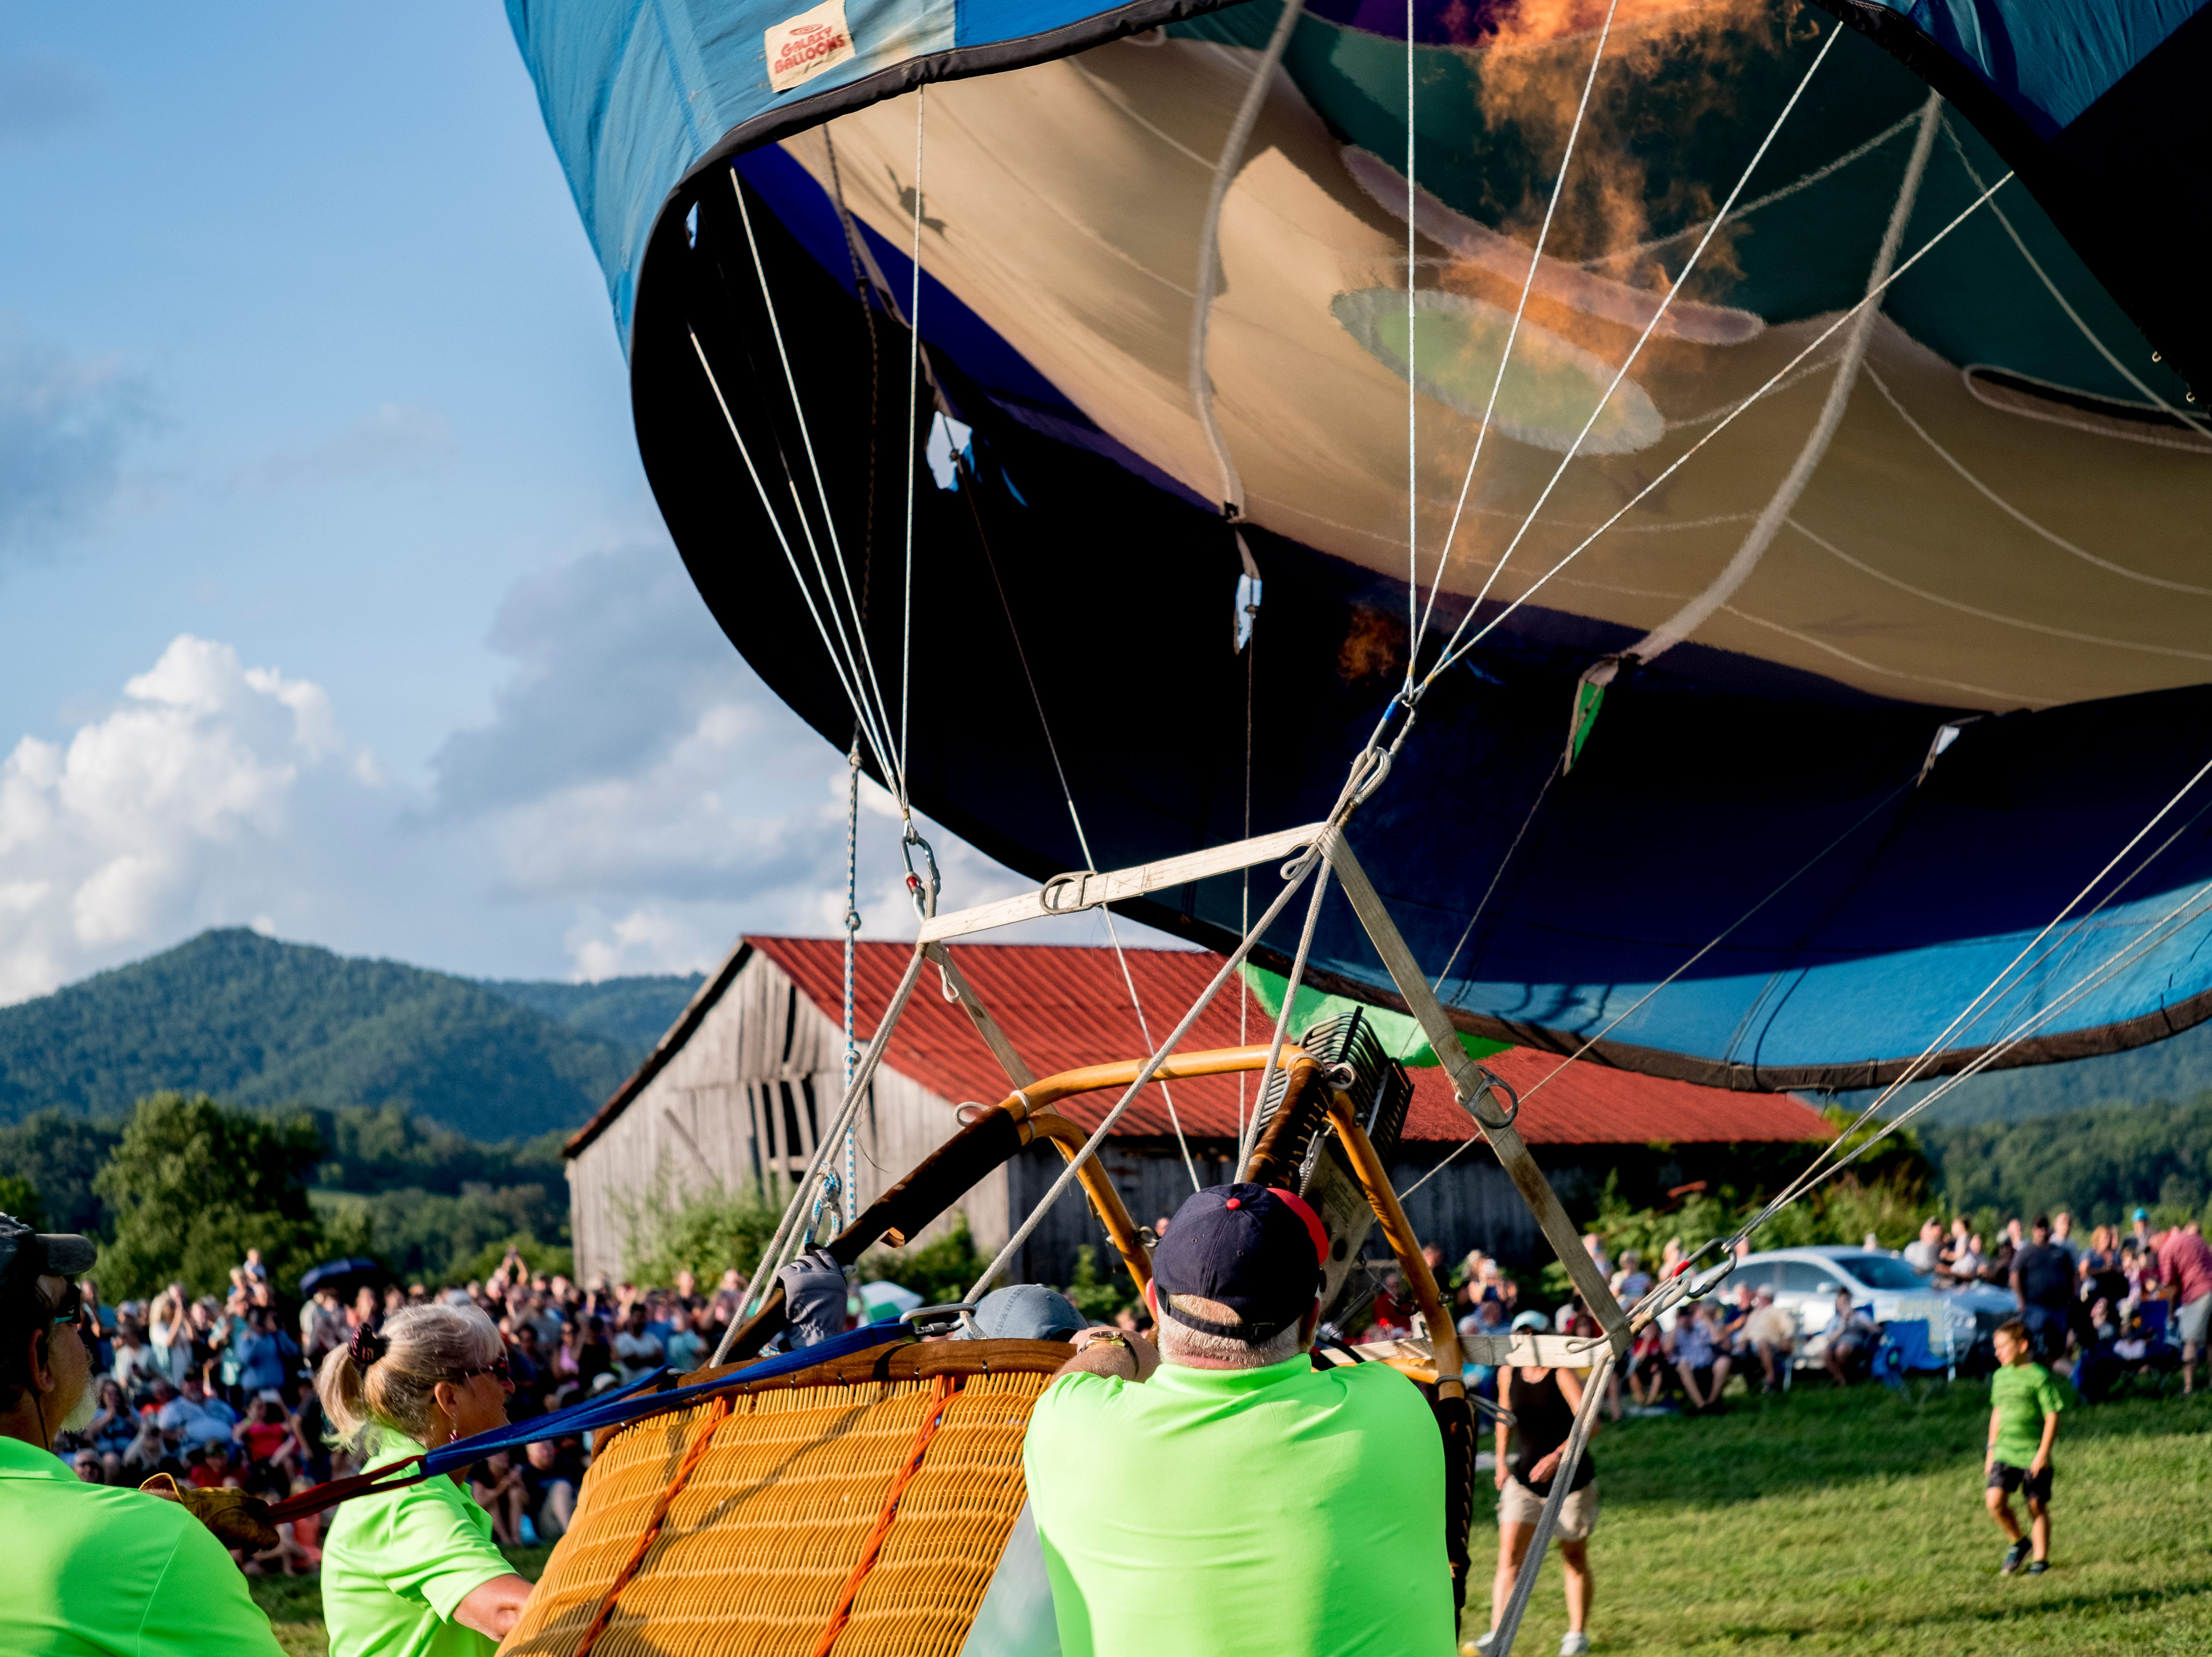 A hot air balloon begins to rise at the second annual Smoky Mountain Balloon Festival in Townsend, Tennessee on Saturday, August 18, 2018. The festival featured several hot air balloons, food trucks, wine tasting and live entertainment.